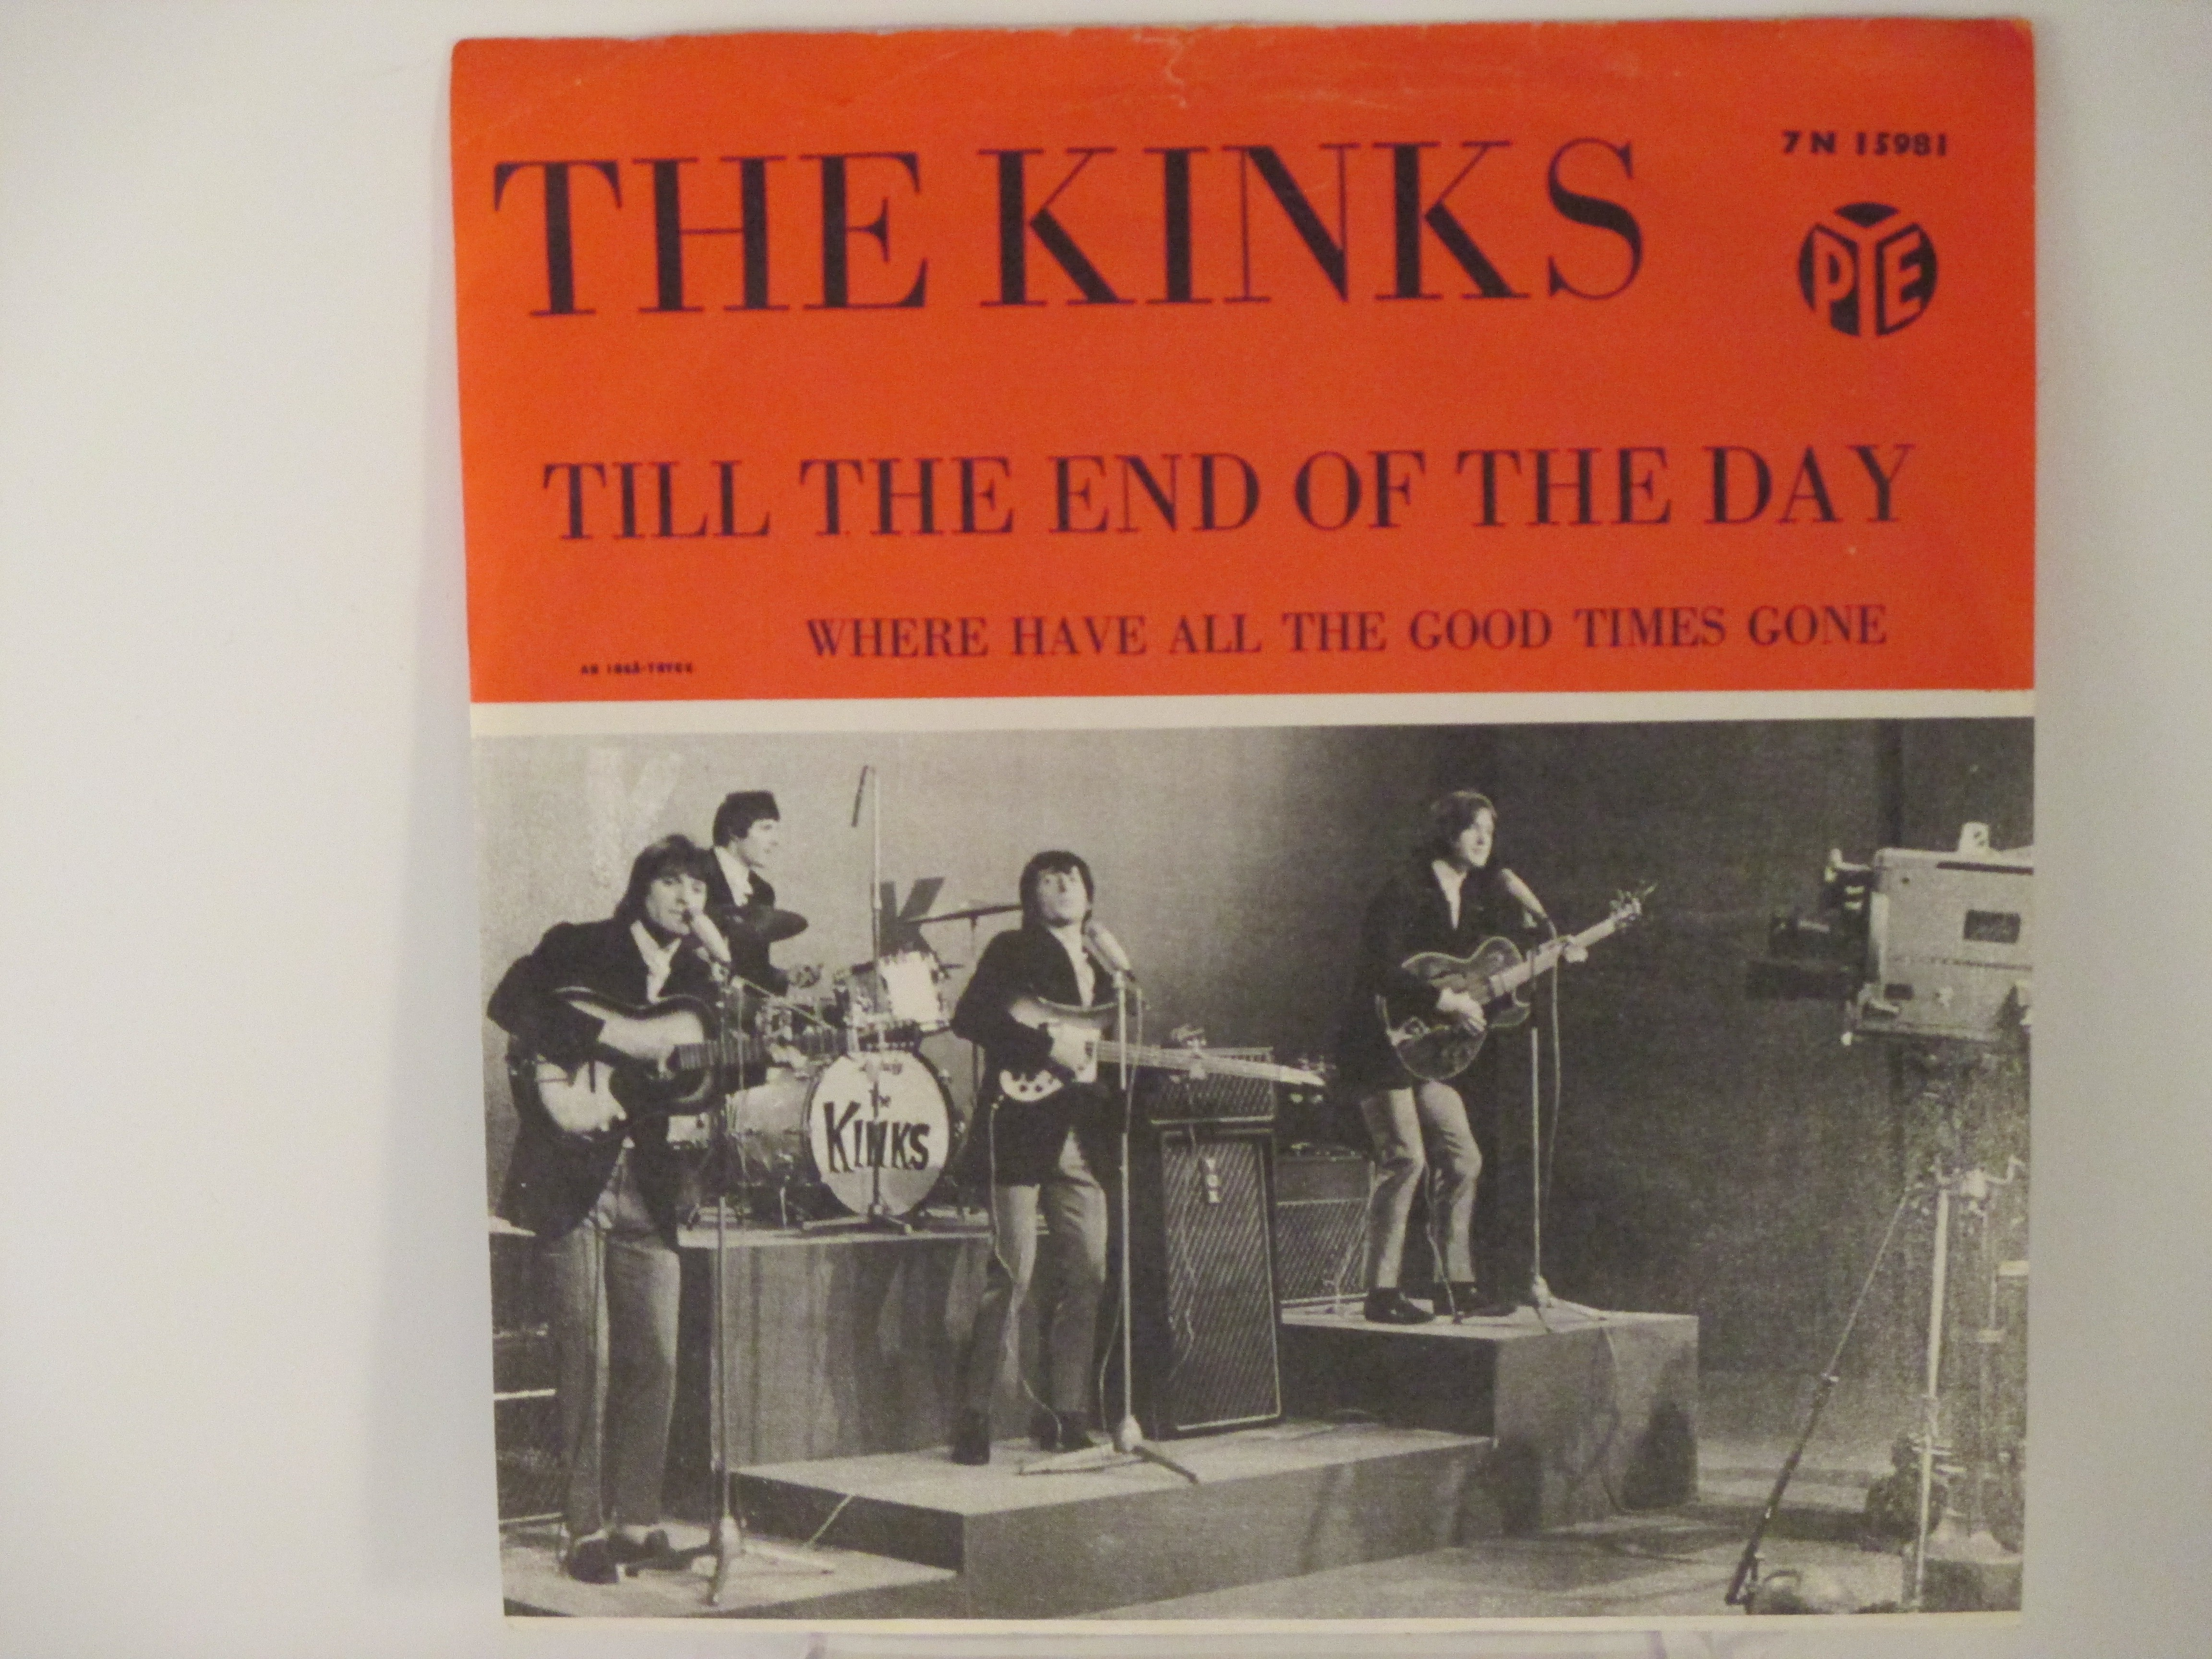 KINKS : Till the end of the day / Where have all the good times gone